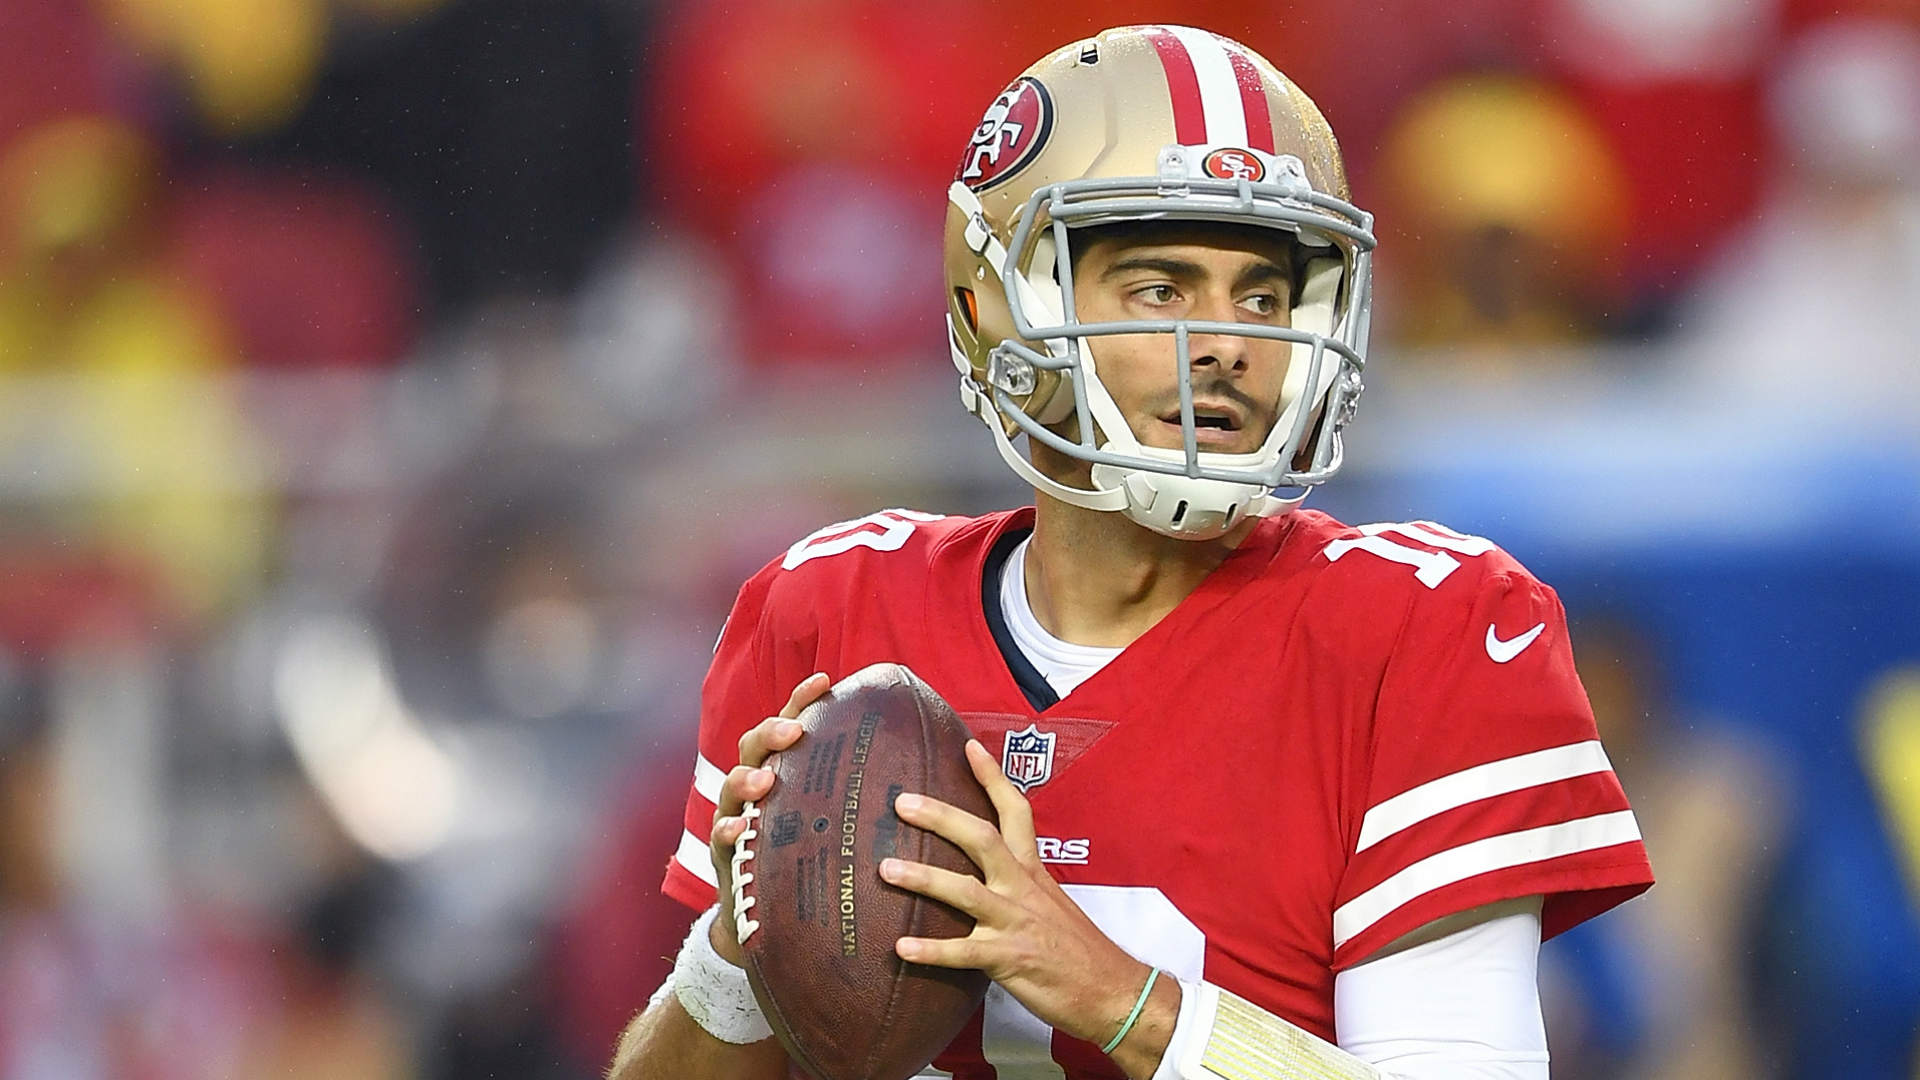 Garoppolo-jimmy-us-news-getty-ftr-112817_1a2zl9rpg587x1nrze6lwz0no3